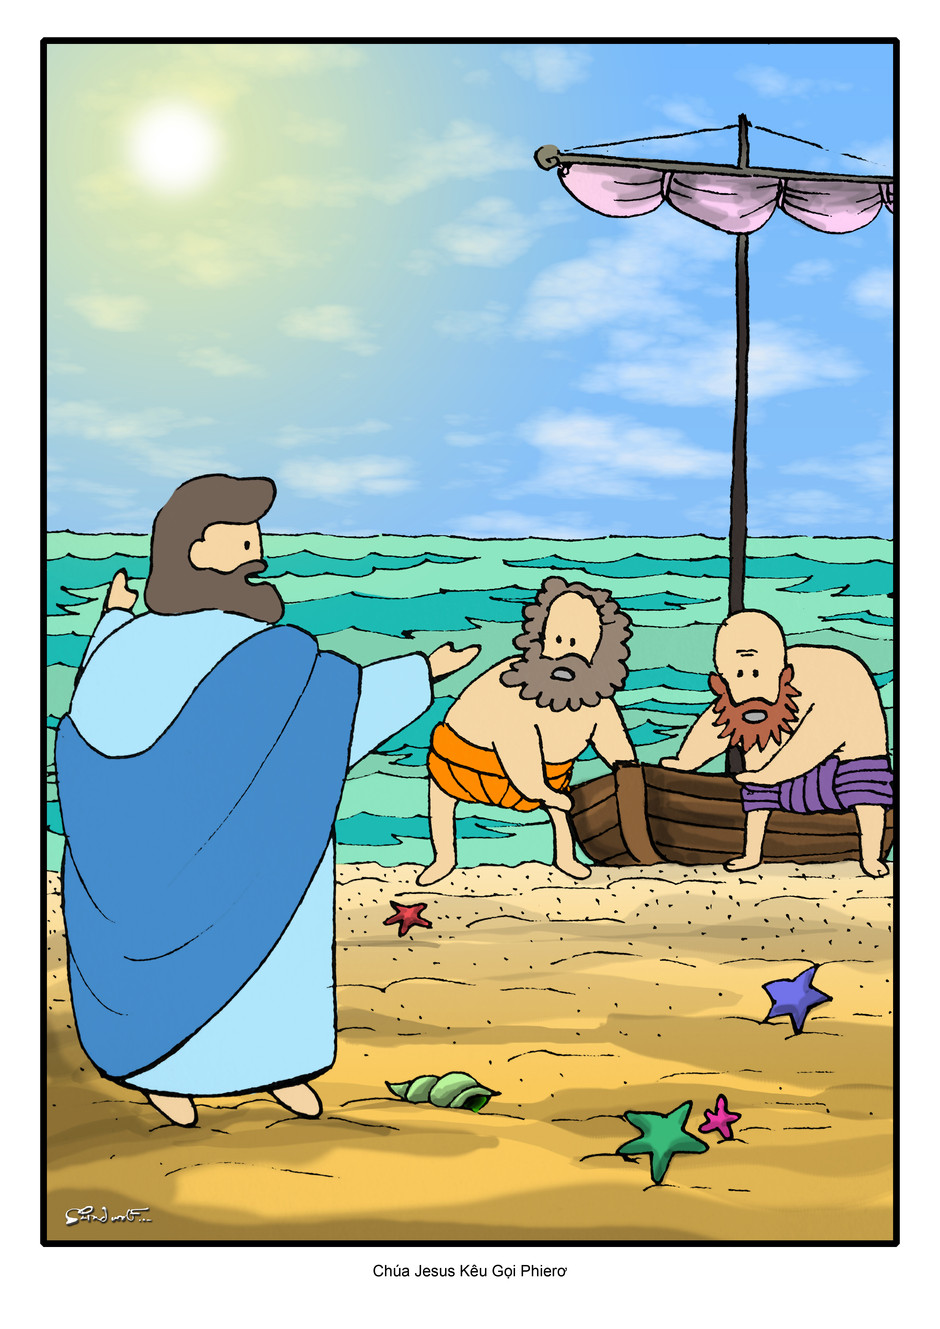 Christ and Peter Coloring Pages - Part 1